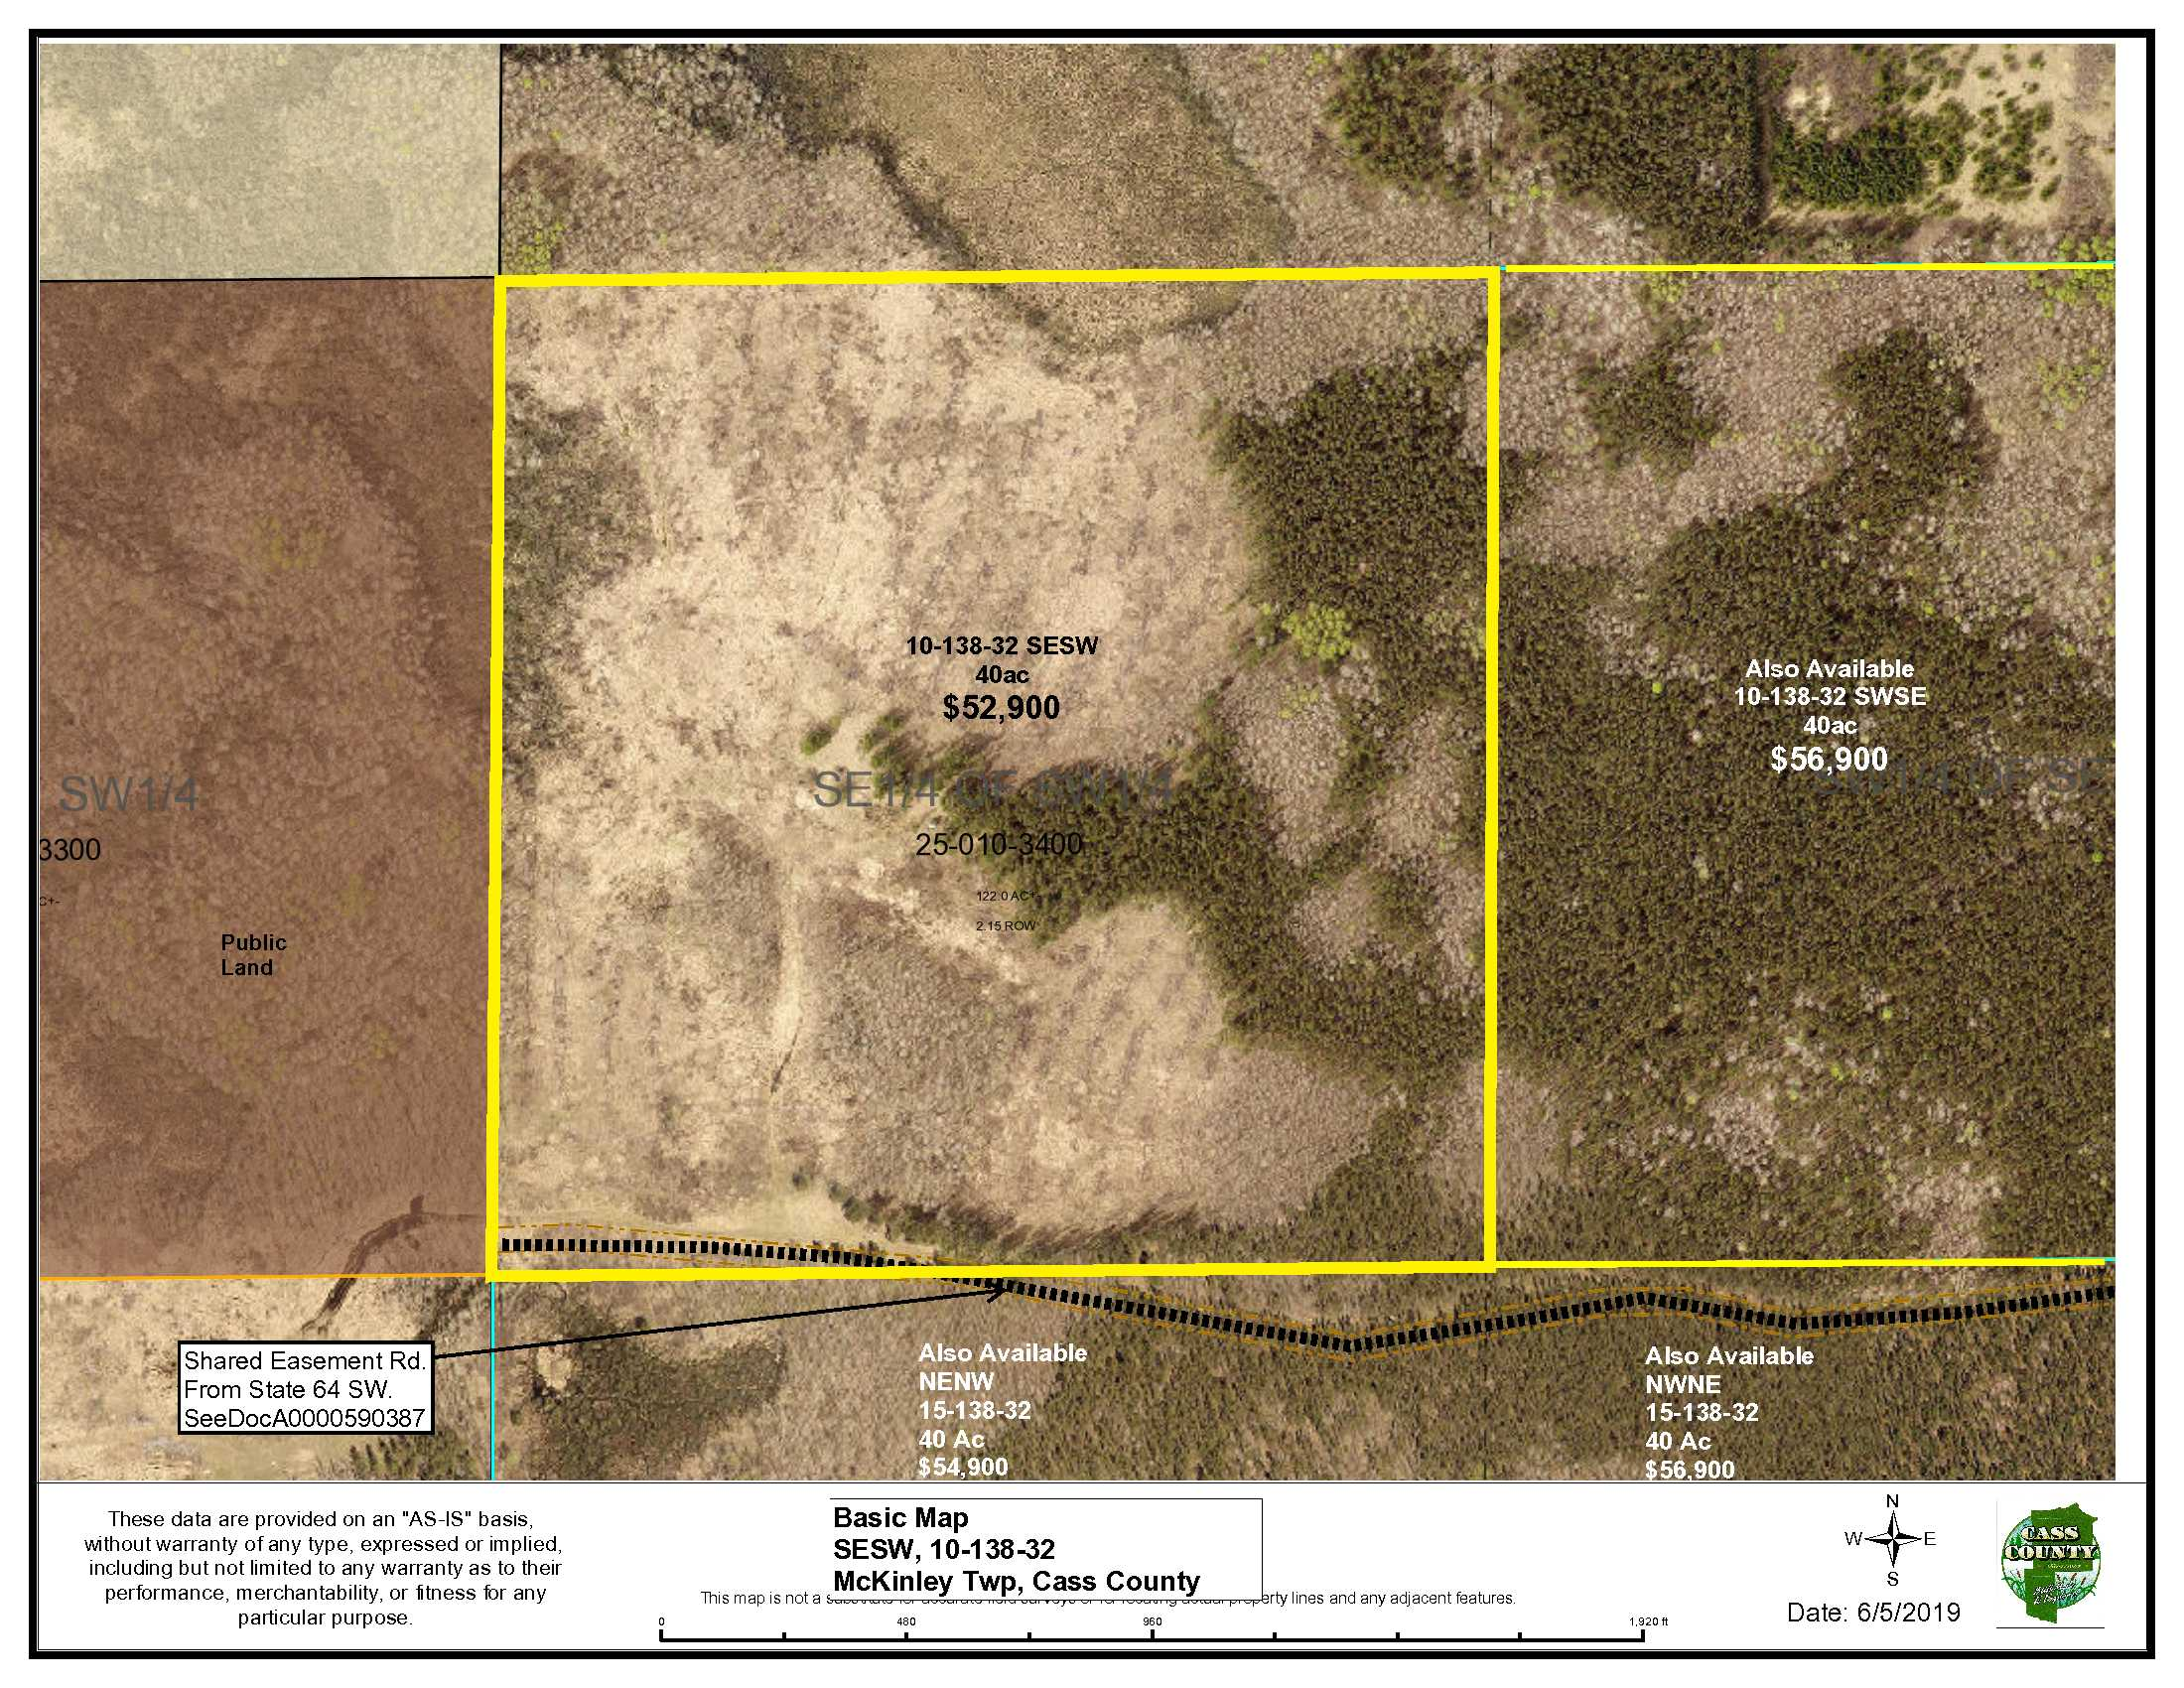 SESW, 10-138-32, Off State 64 SW, McKinley, Backus